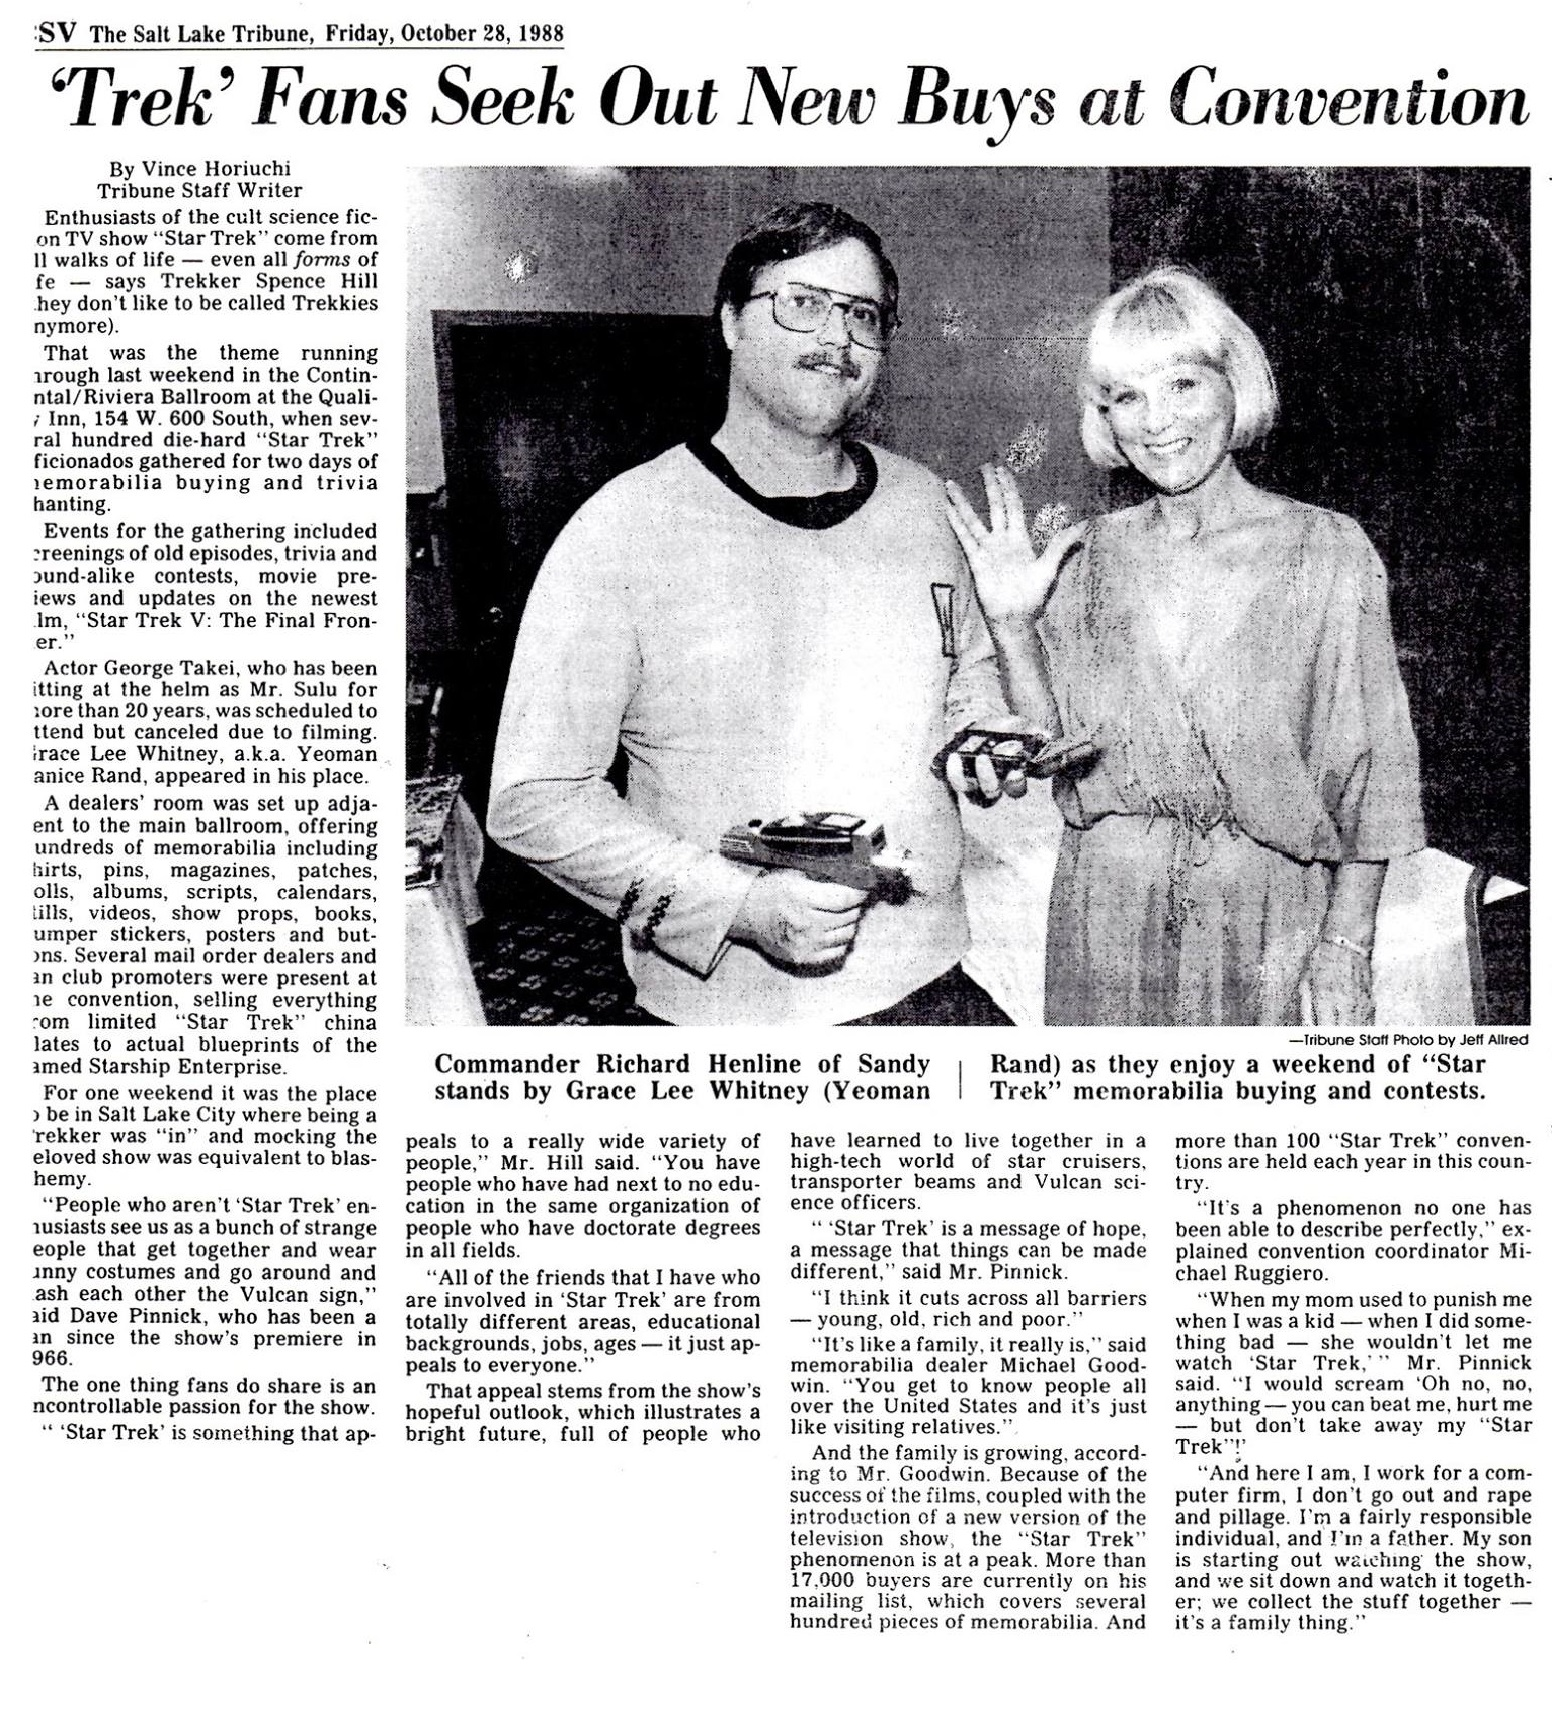 1988 Star Trek Convention in Salt Lake City